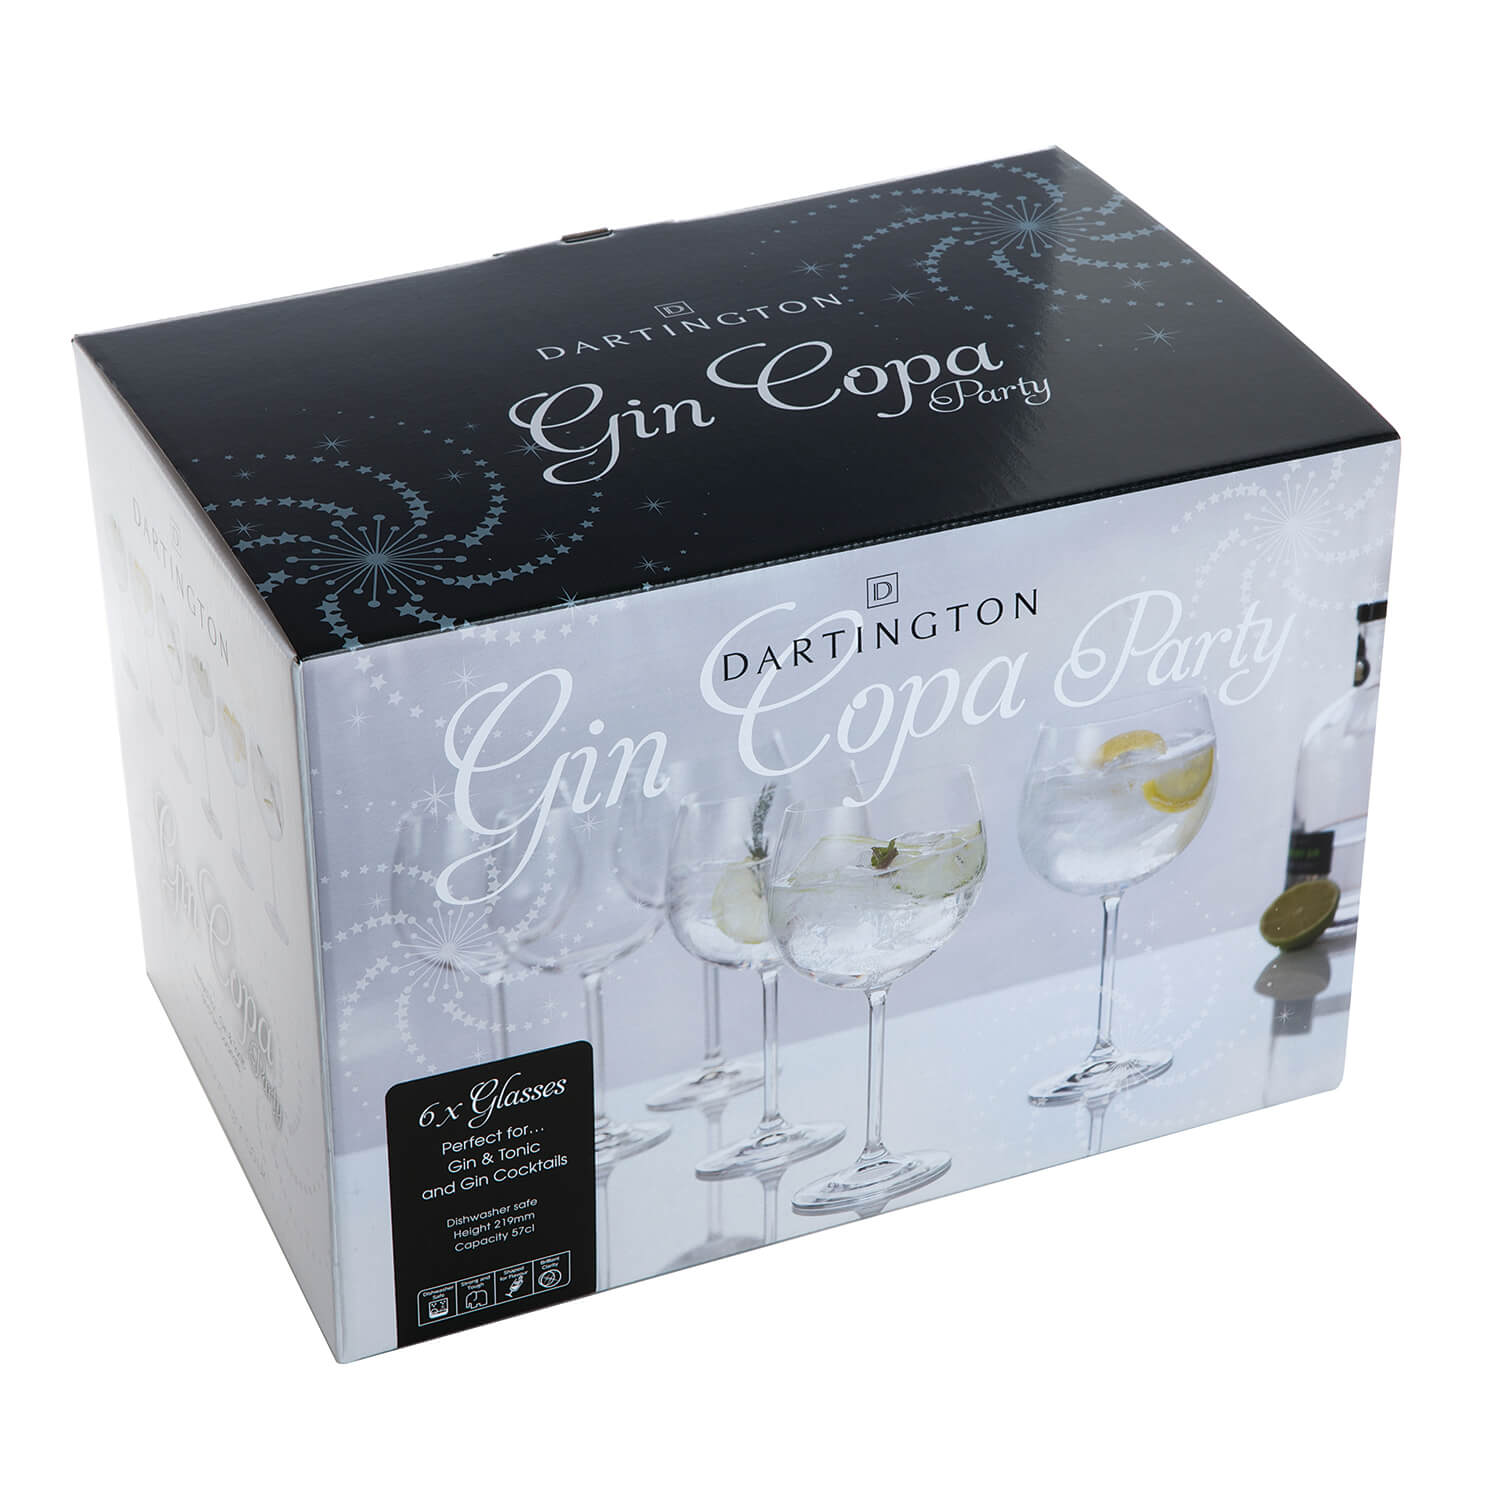 Image of Dartington Crystal Set of Six Gin Party Glasses